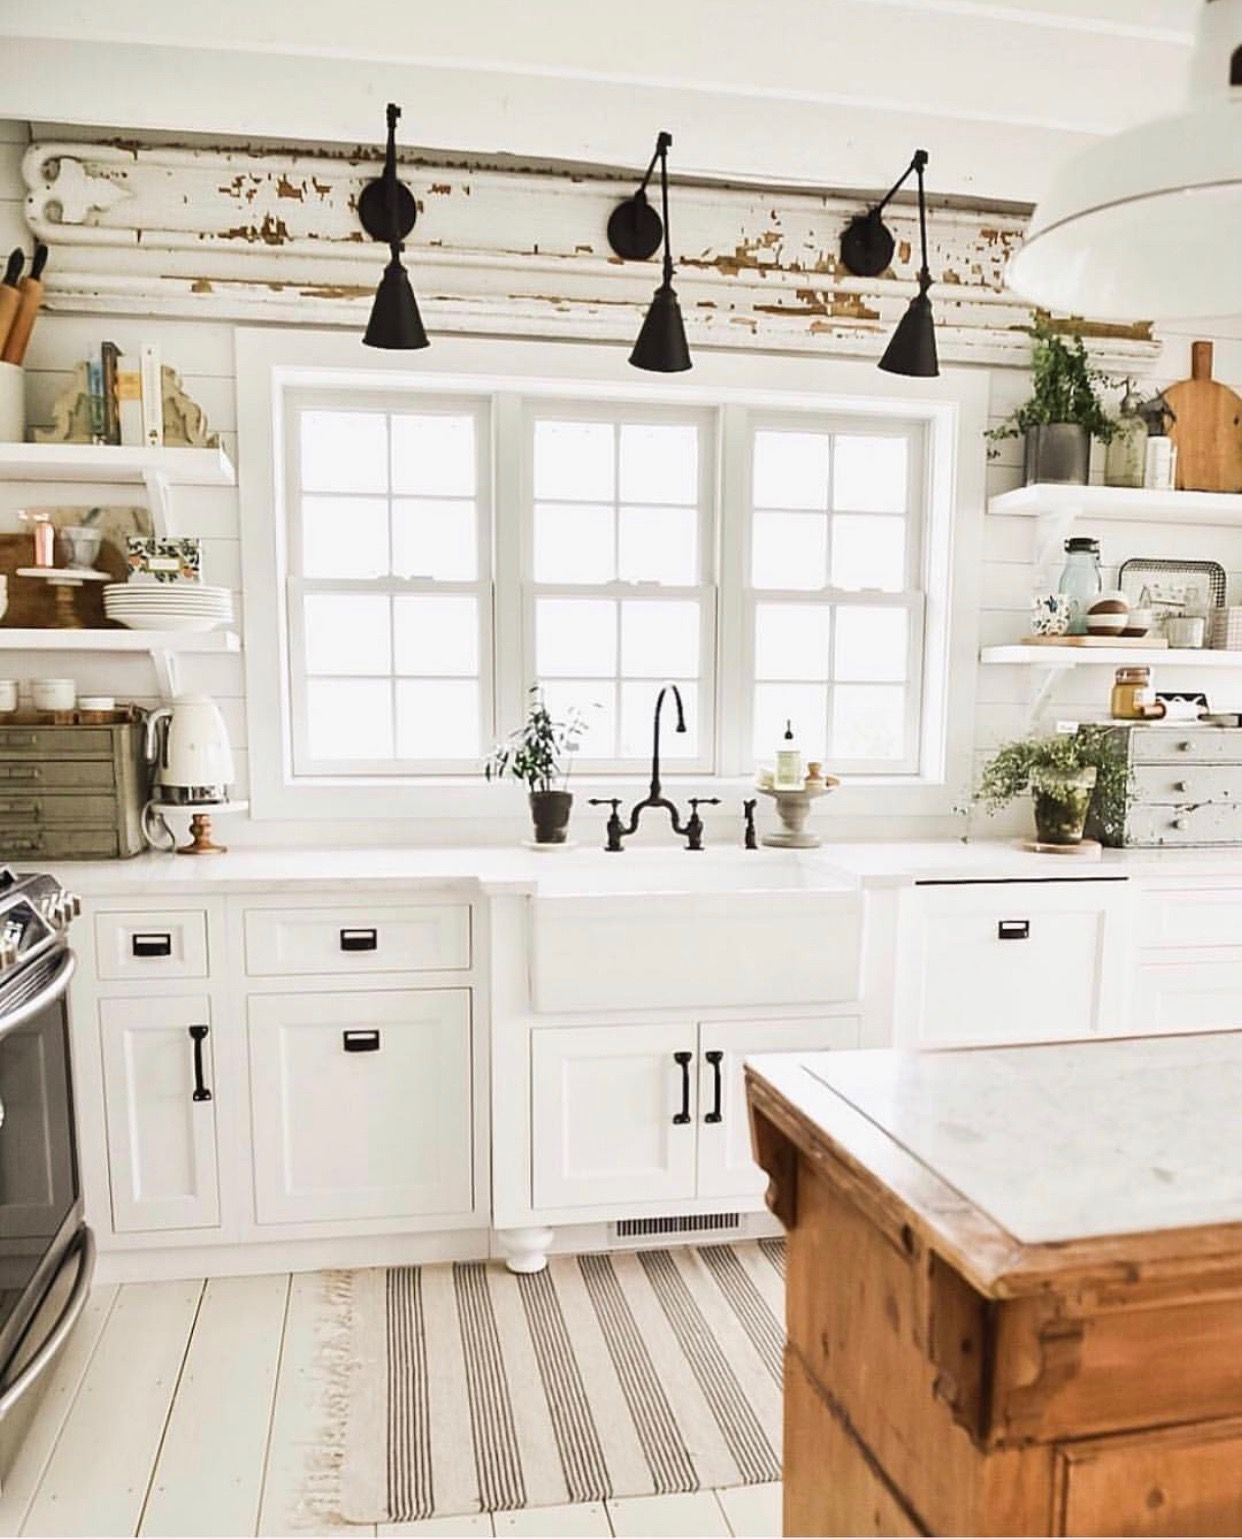 7 Best Kitchen Lighting Ideas Modern Light Fixtures For Home Trendy Farmhouse Kitchen Farmhouse Style Kitchen Farmhouse Kitchen Design